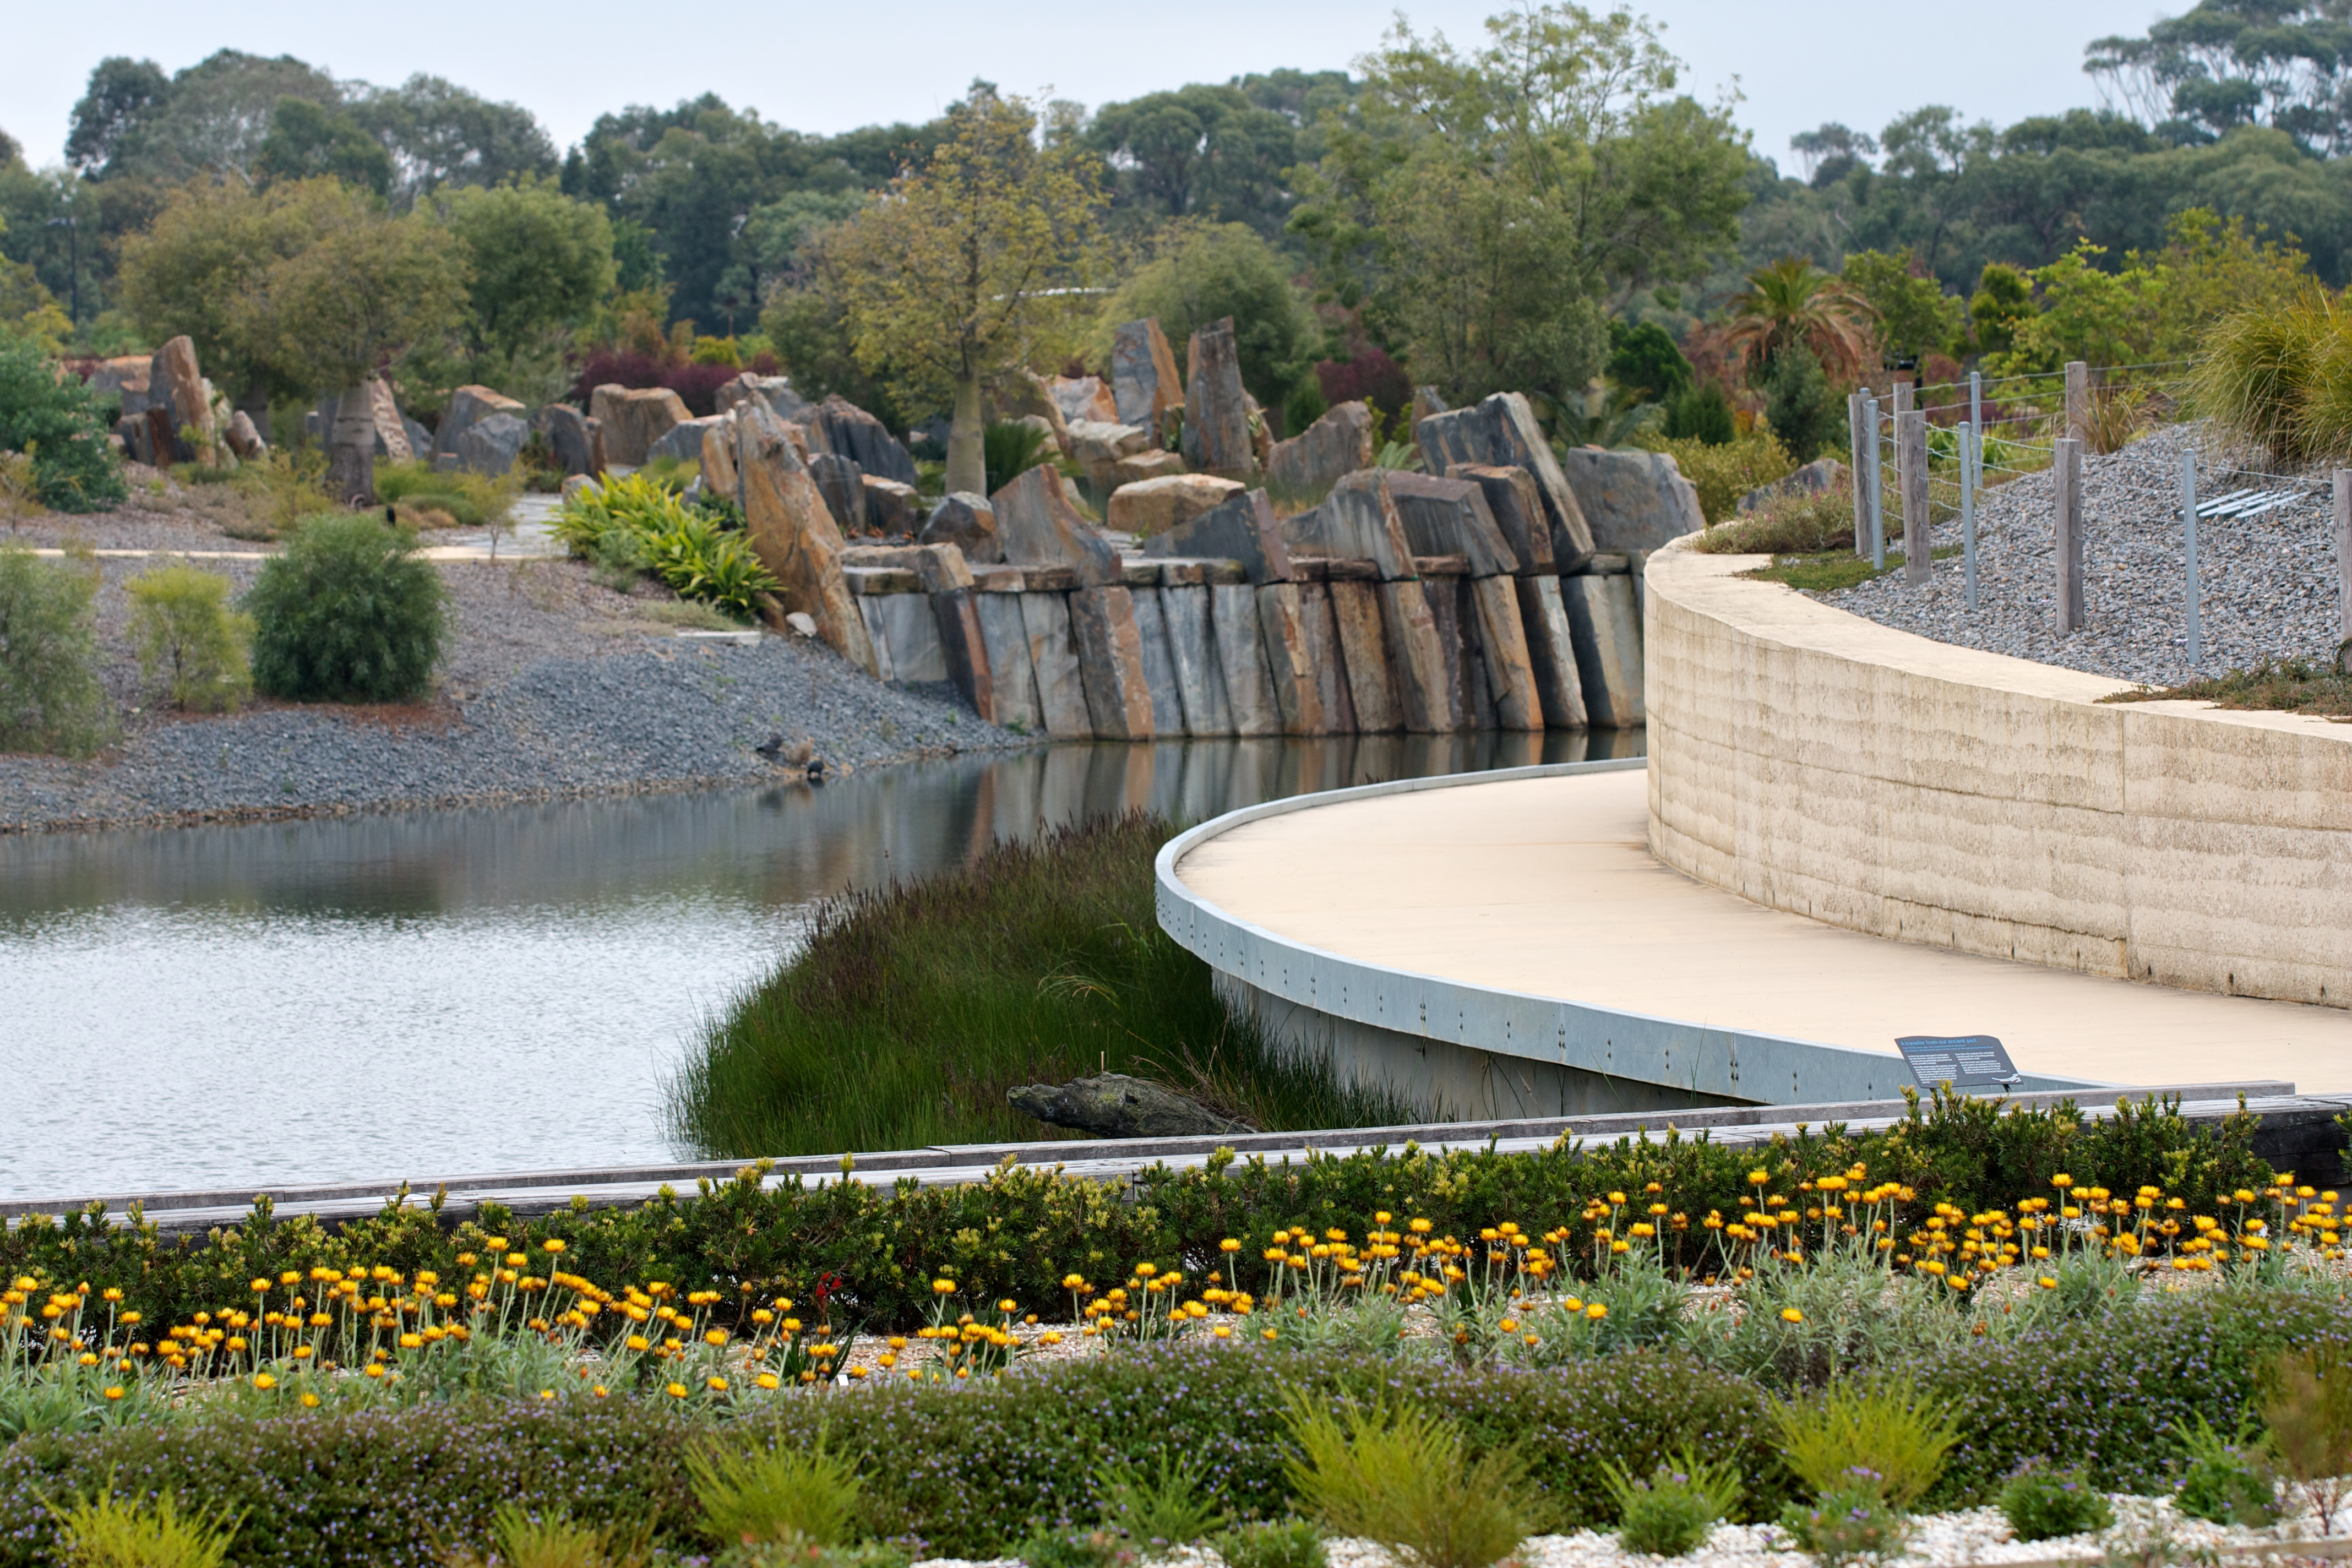 Lake view from the display gardens at Cranbourne Gardens. Image by Amy Akers